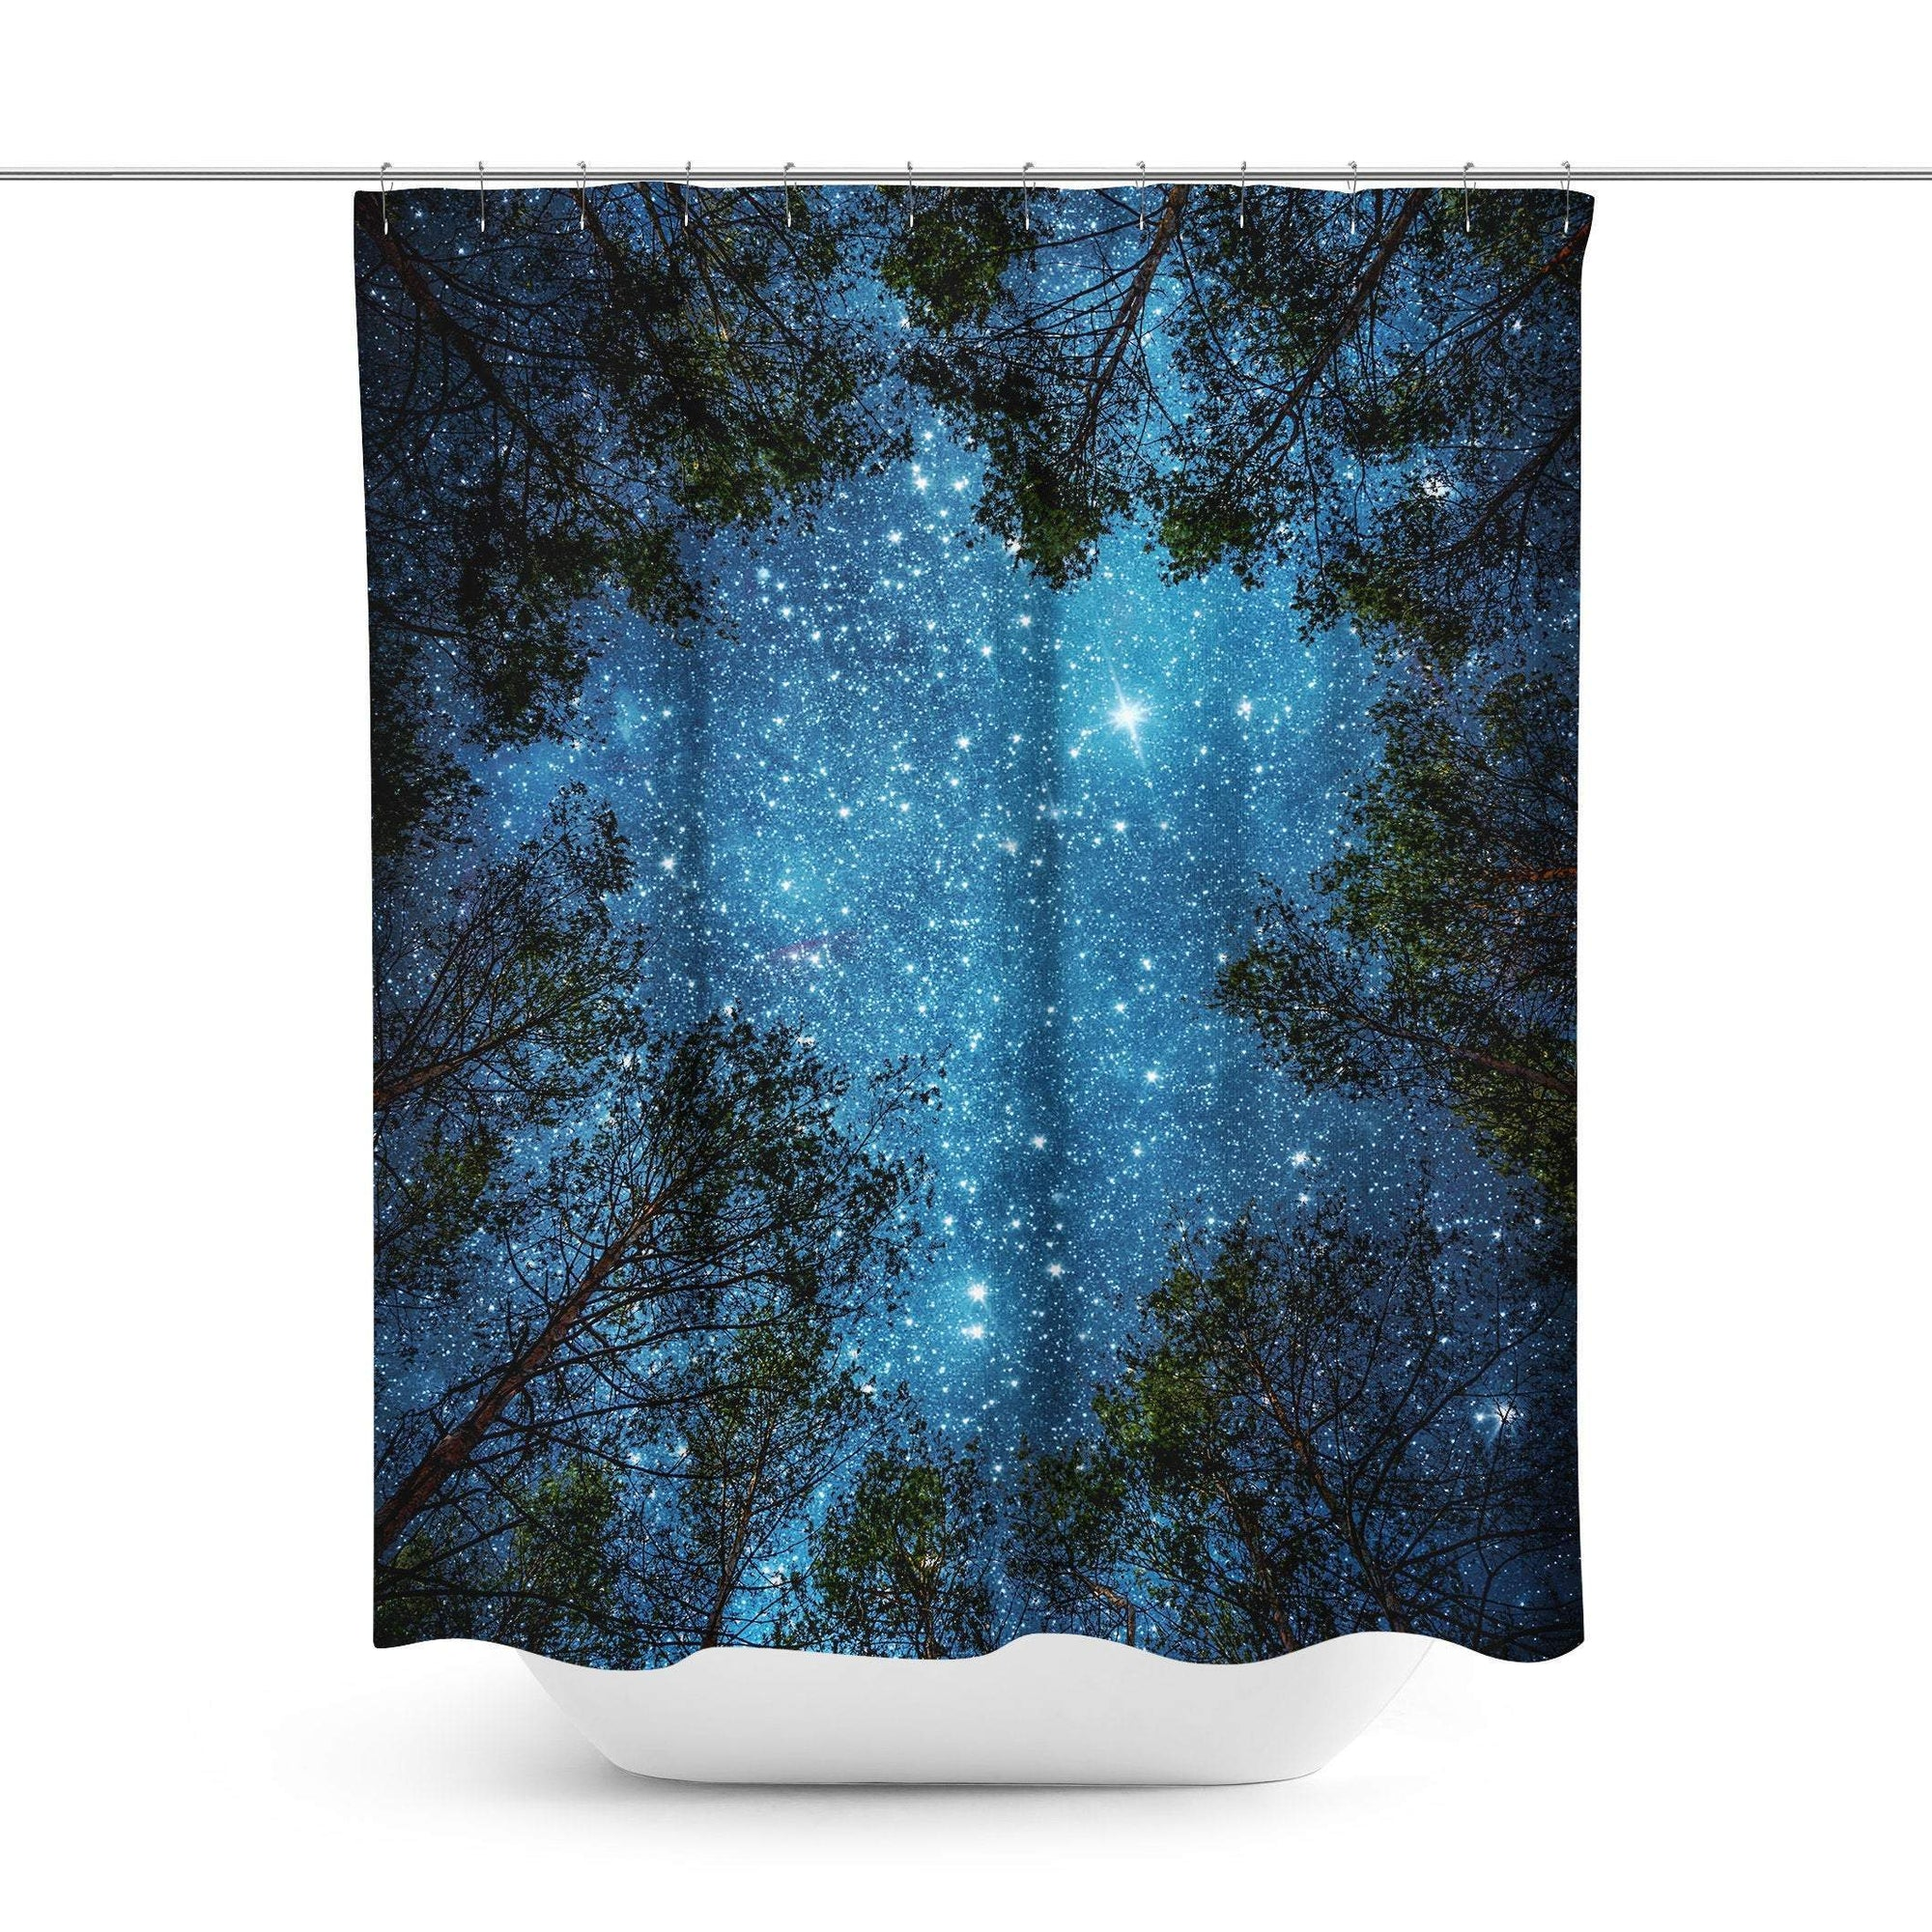 Stars Shower Curtain - Shower Curtains - W.FRANCIS